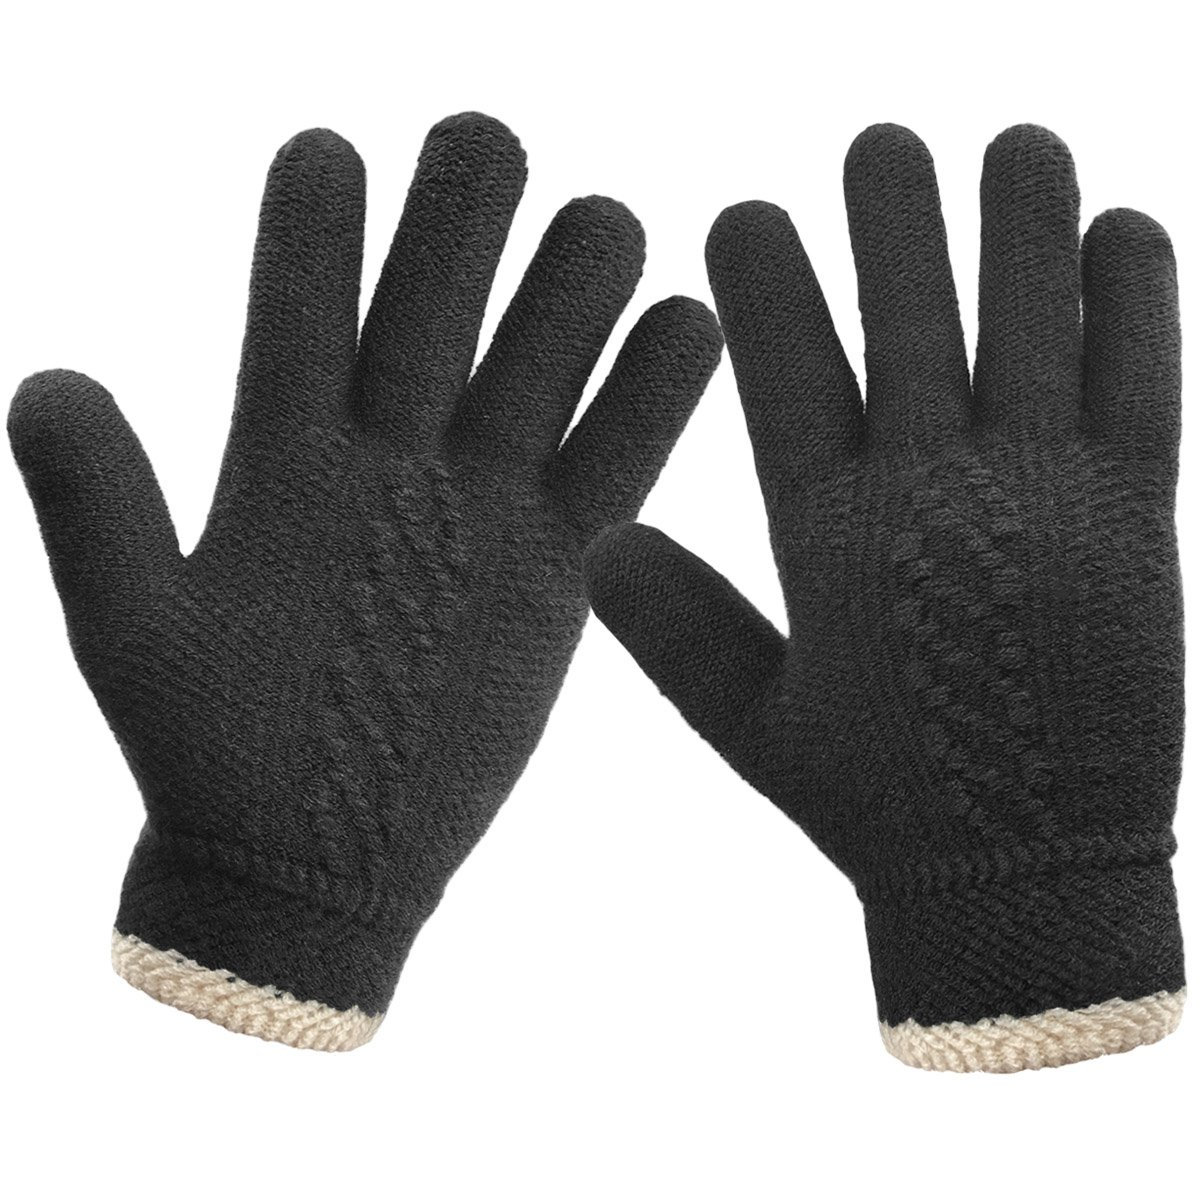 LETHMIK Unique Cuff Winter Gloves Womens Solid Color Warm Knitted Thick Gloves Black by LETHMIK